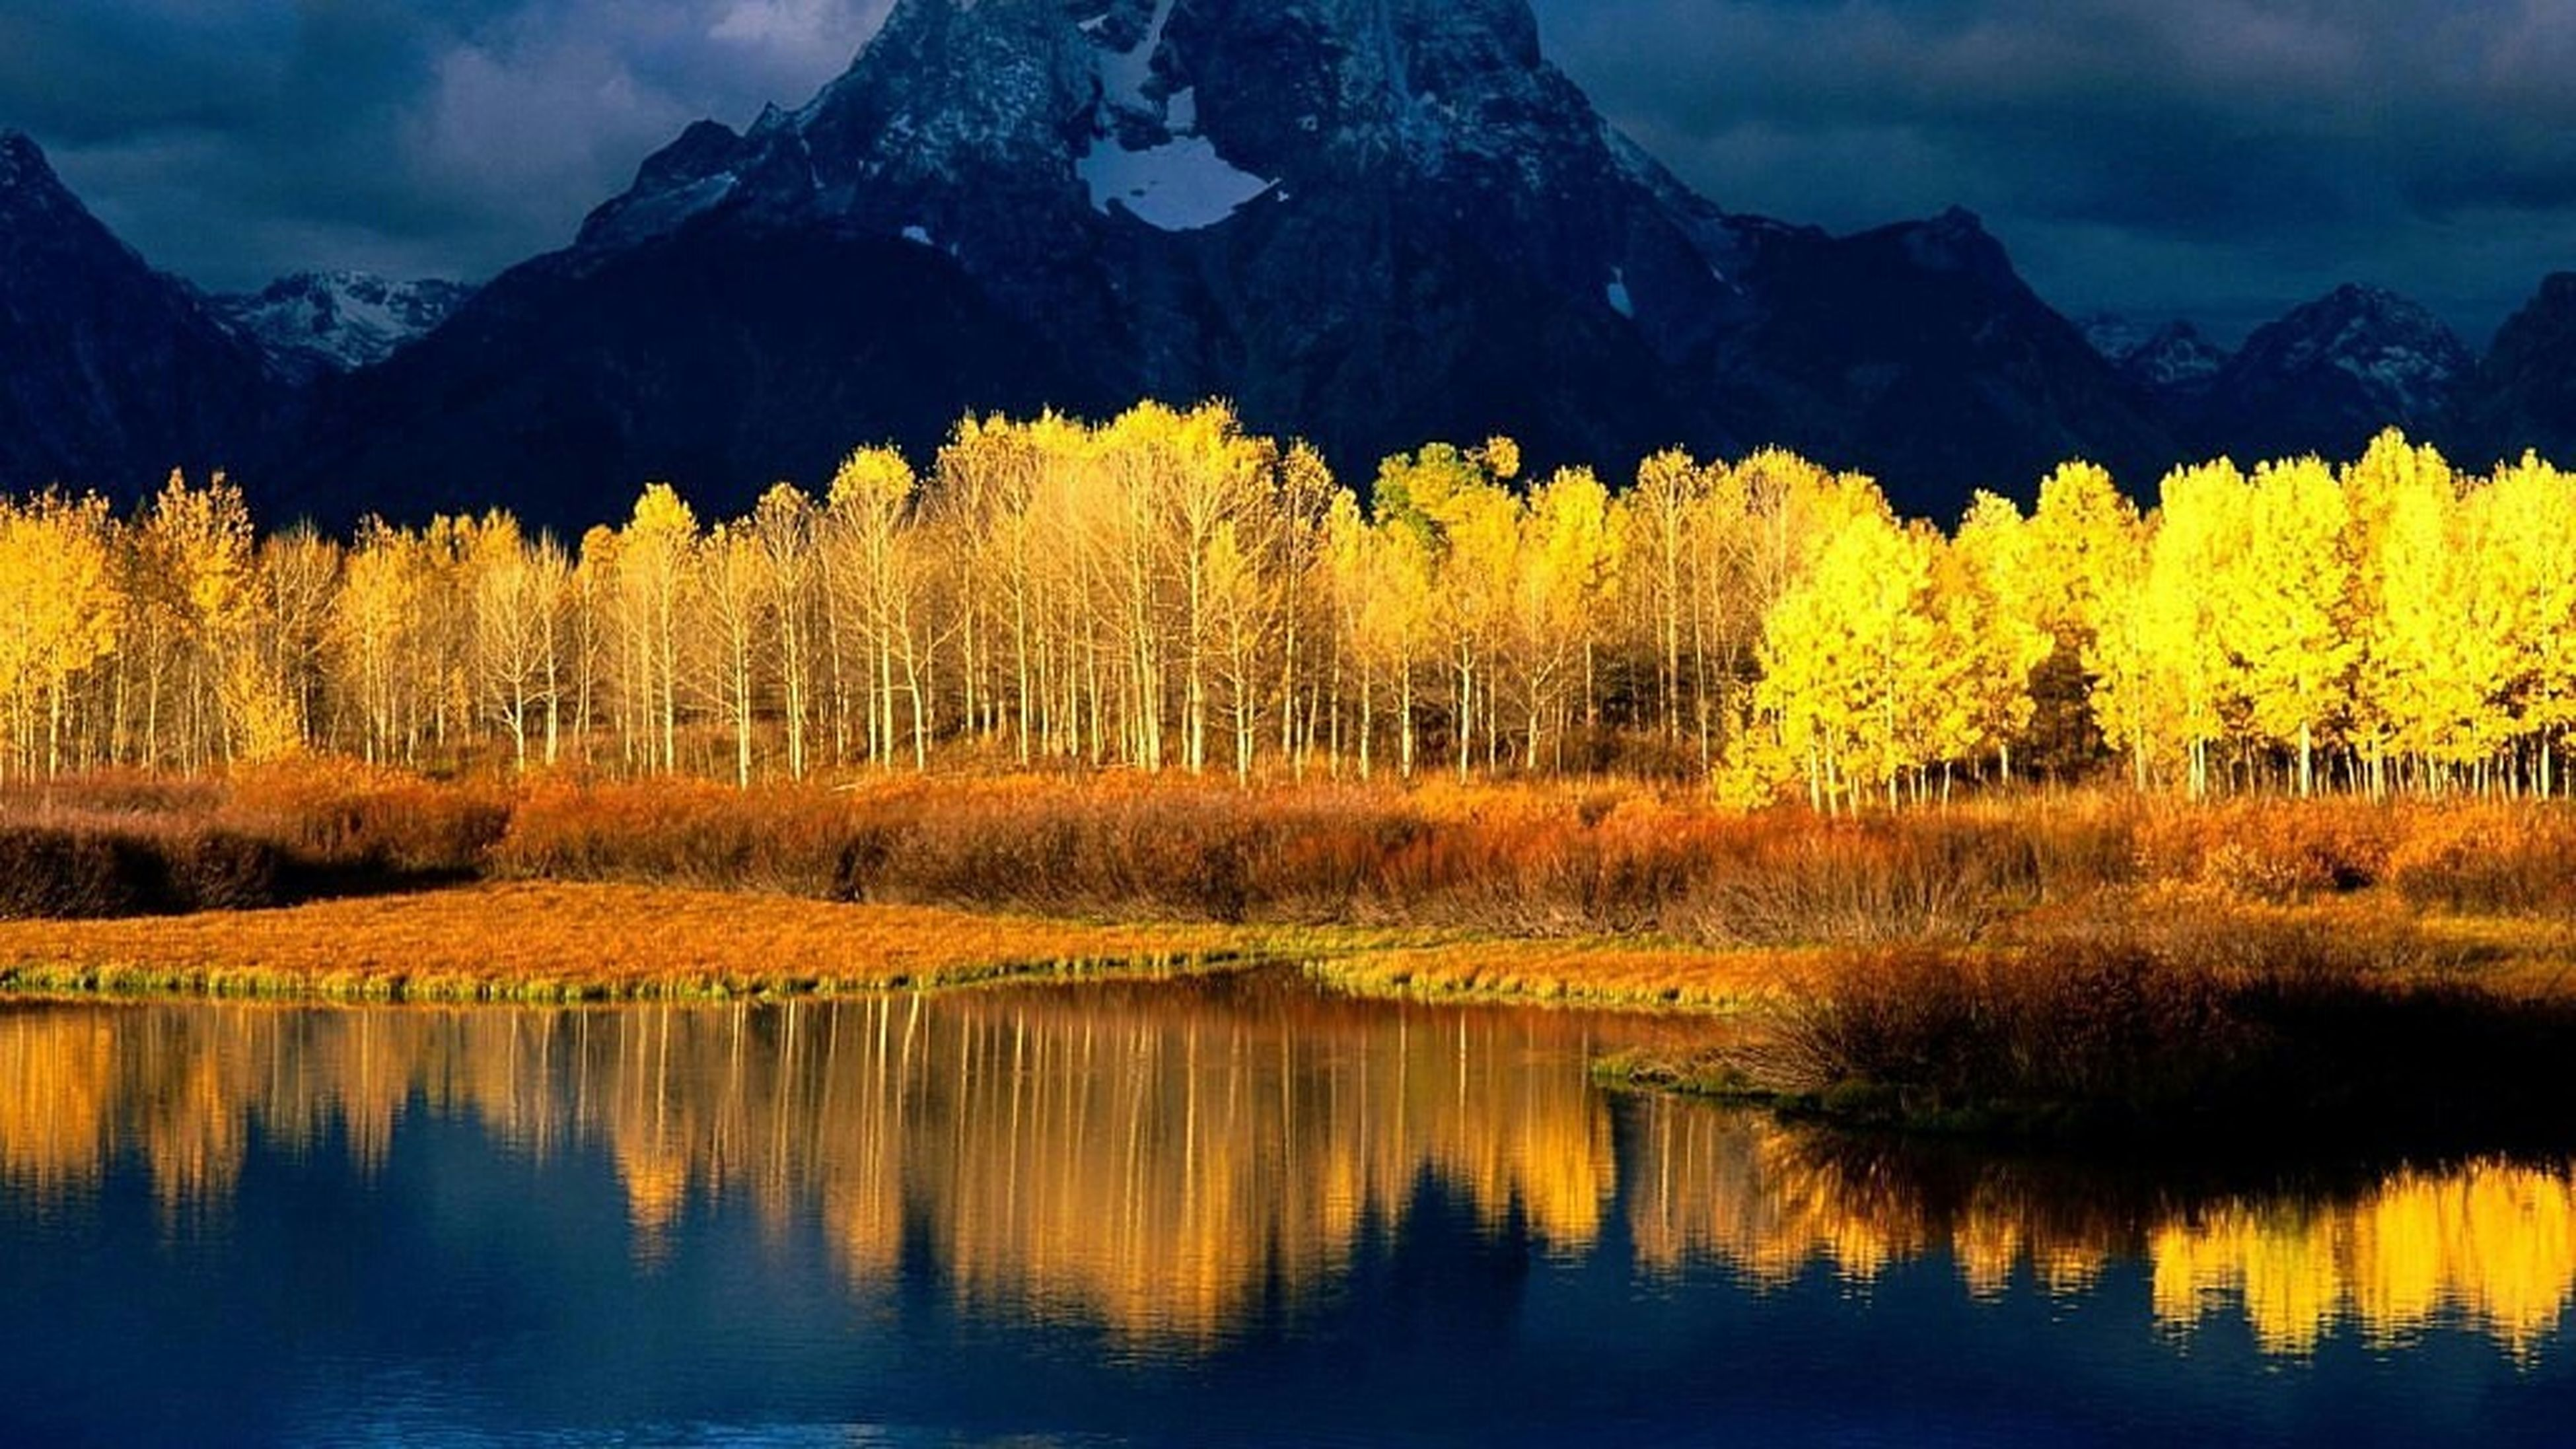 water, mountain, tranquil scene, lake, beauty in nature, scenics, tranquility, reflection, nature, waterfront, sky, yellow, mountain range, idyllic, tree, growth, landscape, non-urban scene, river, no people